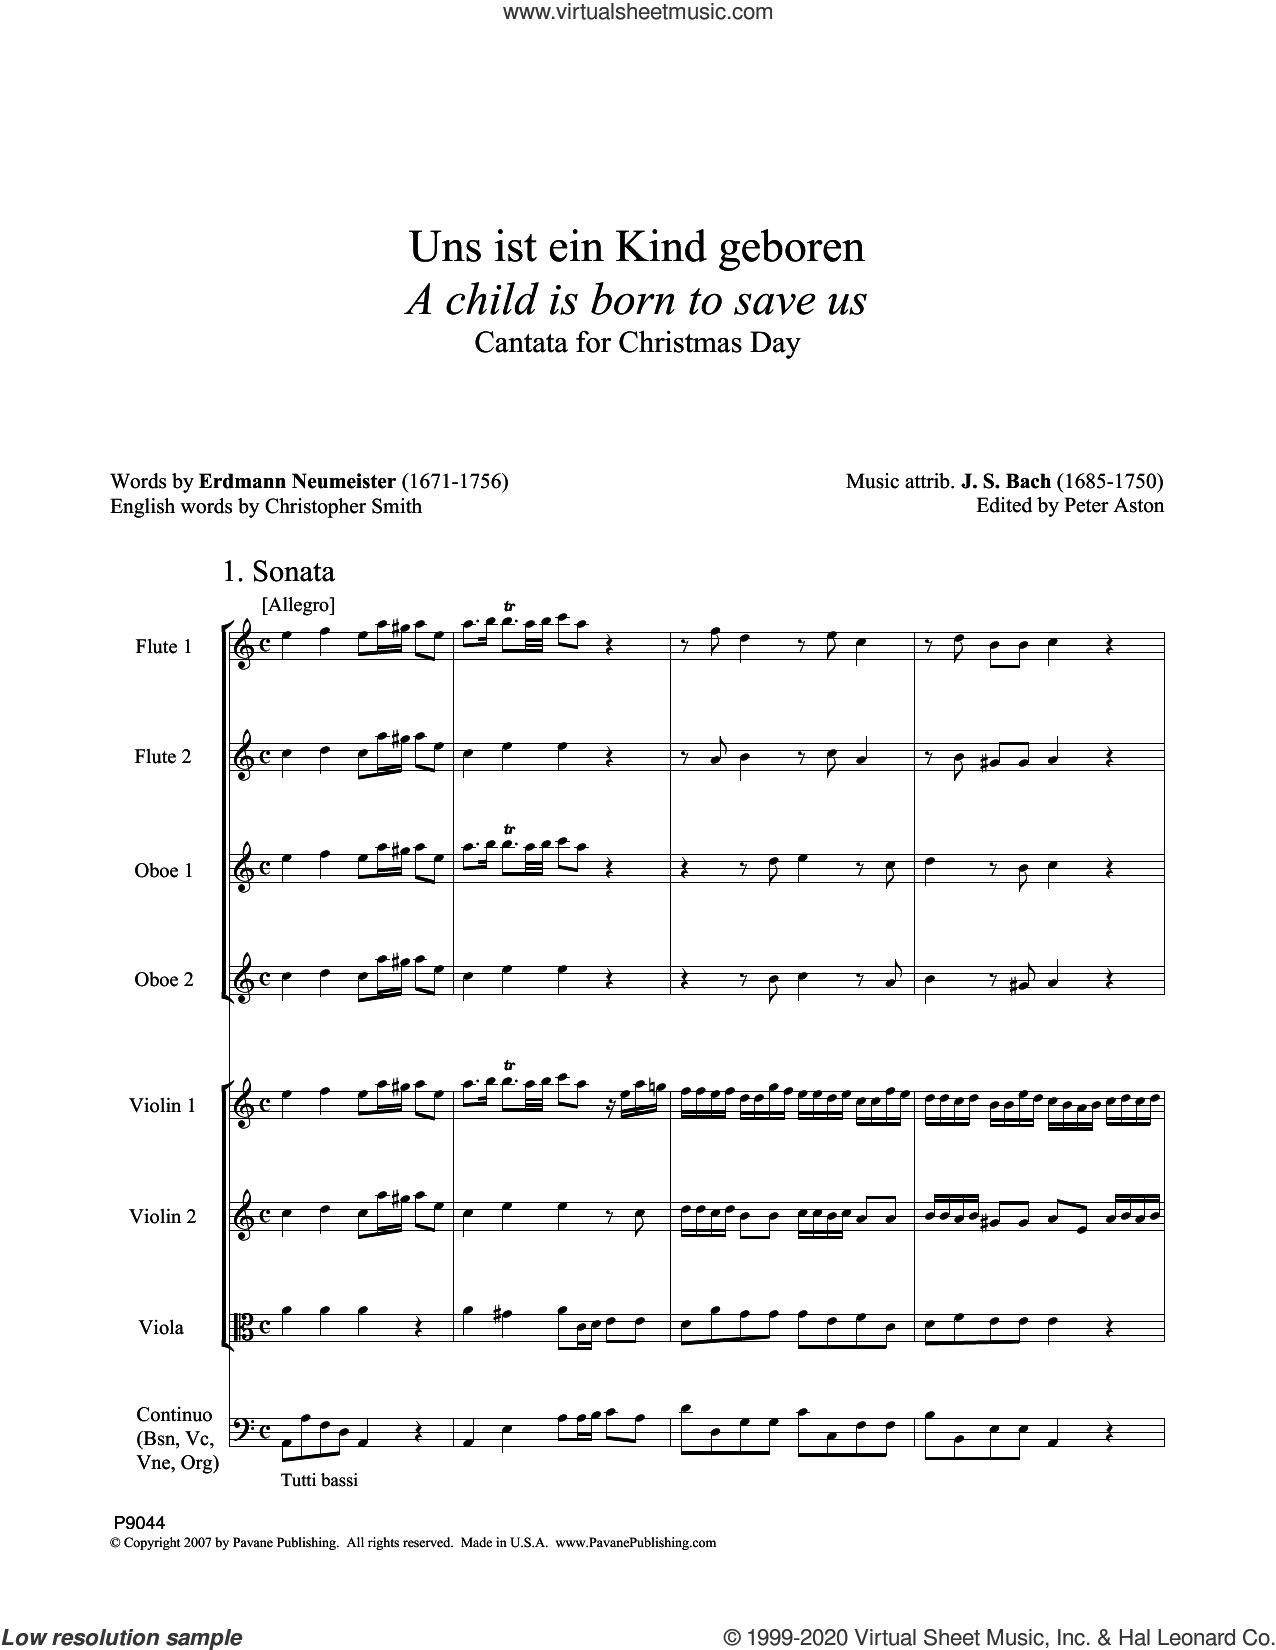 A Child Is Born To Save Us (Uns ist ein Kind geboren) (Full Score) (ed. Peter Aston) sheet music for orchestra/band (full score) by Johann Sebastian Bach and Peter Aston, classical score, intermediate skill level